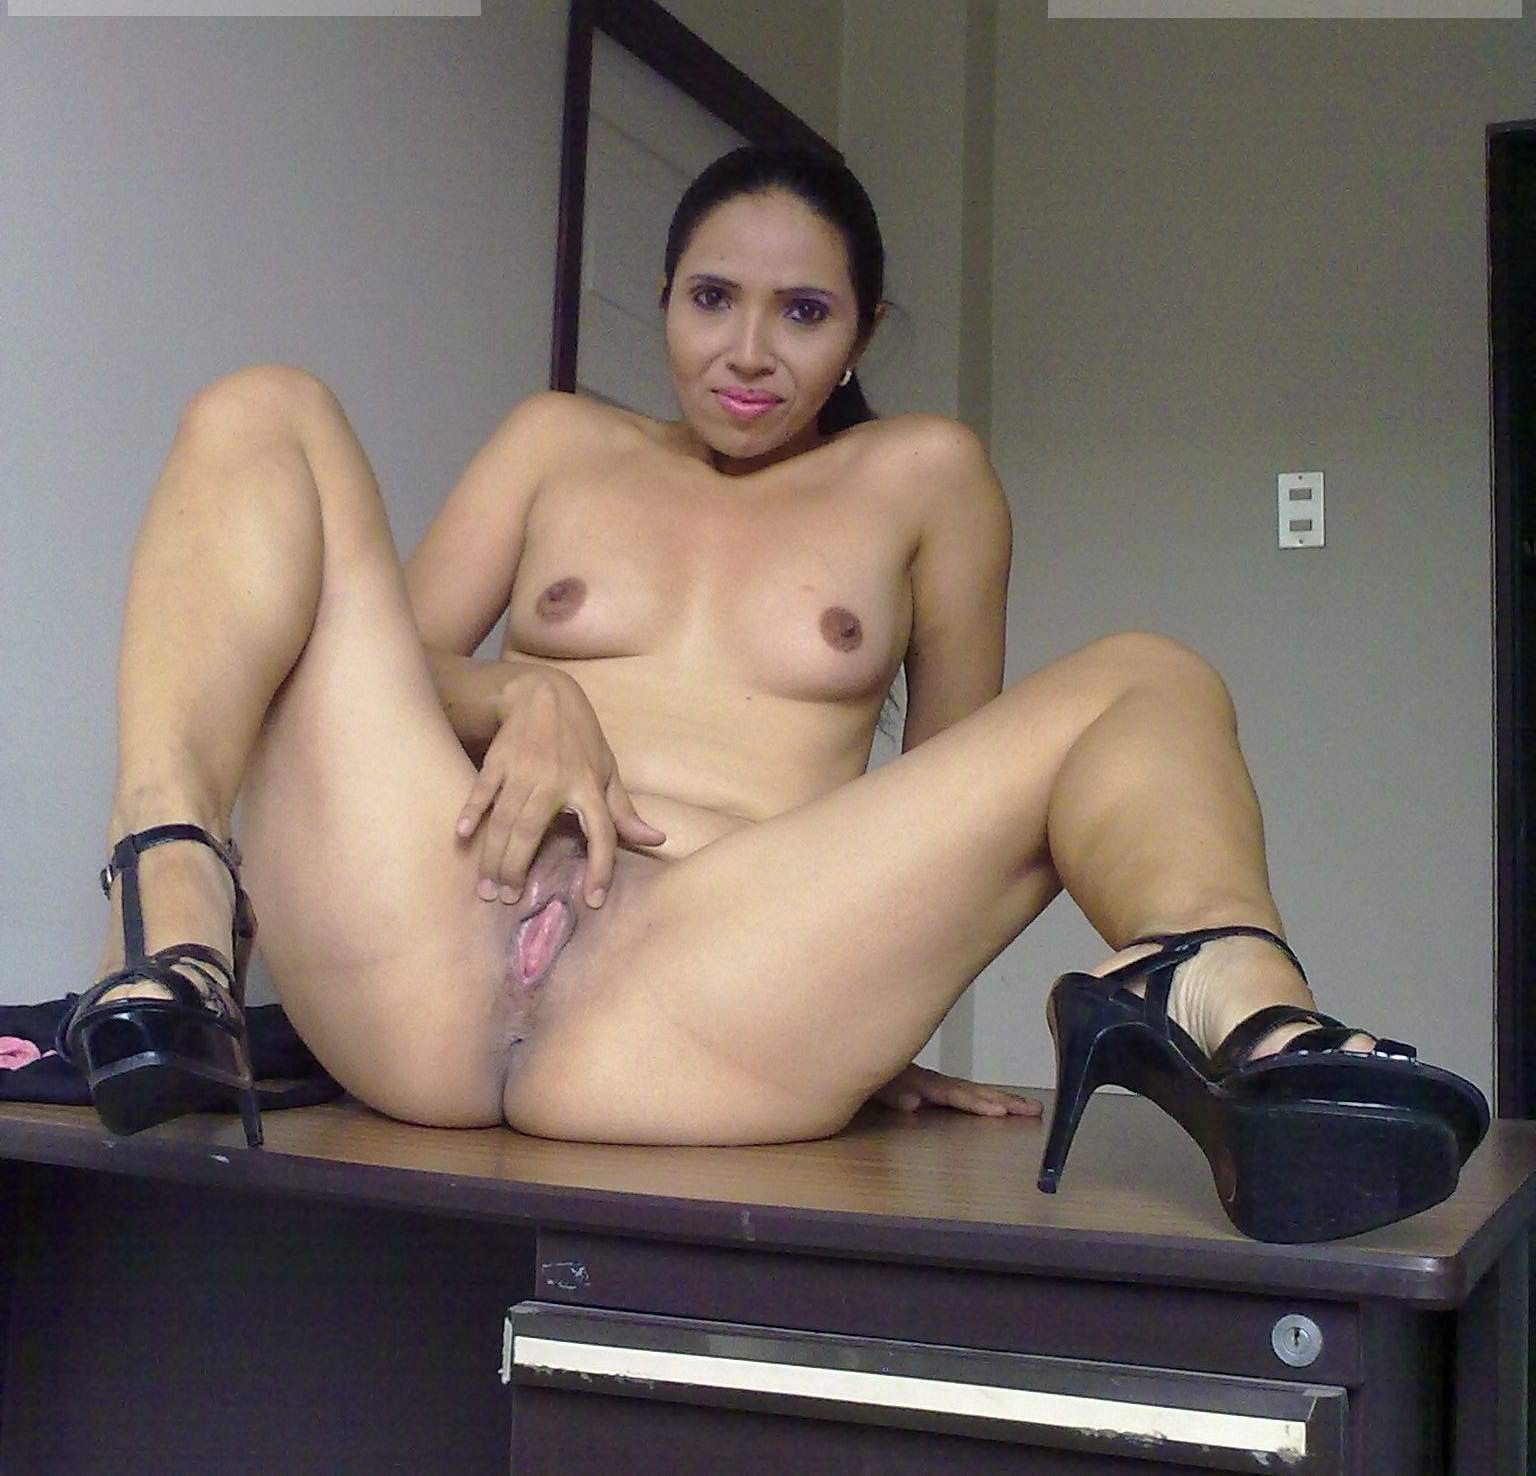 Porno amateur mexicanas, asian person sex orgy